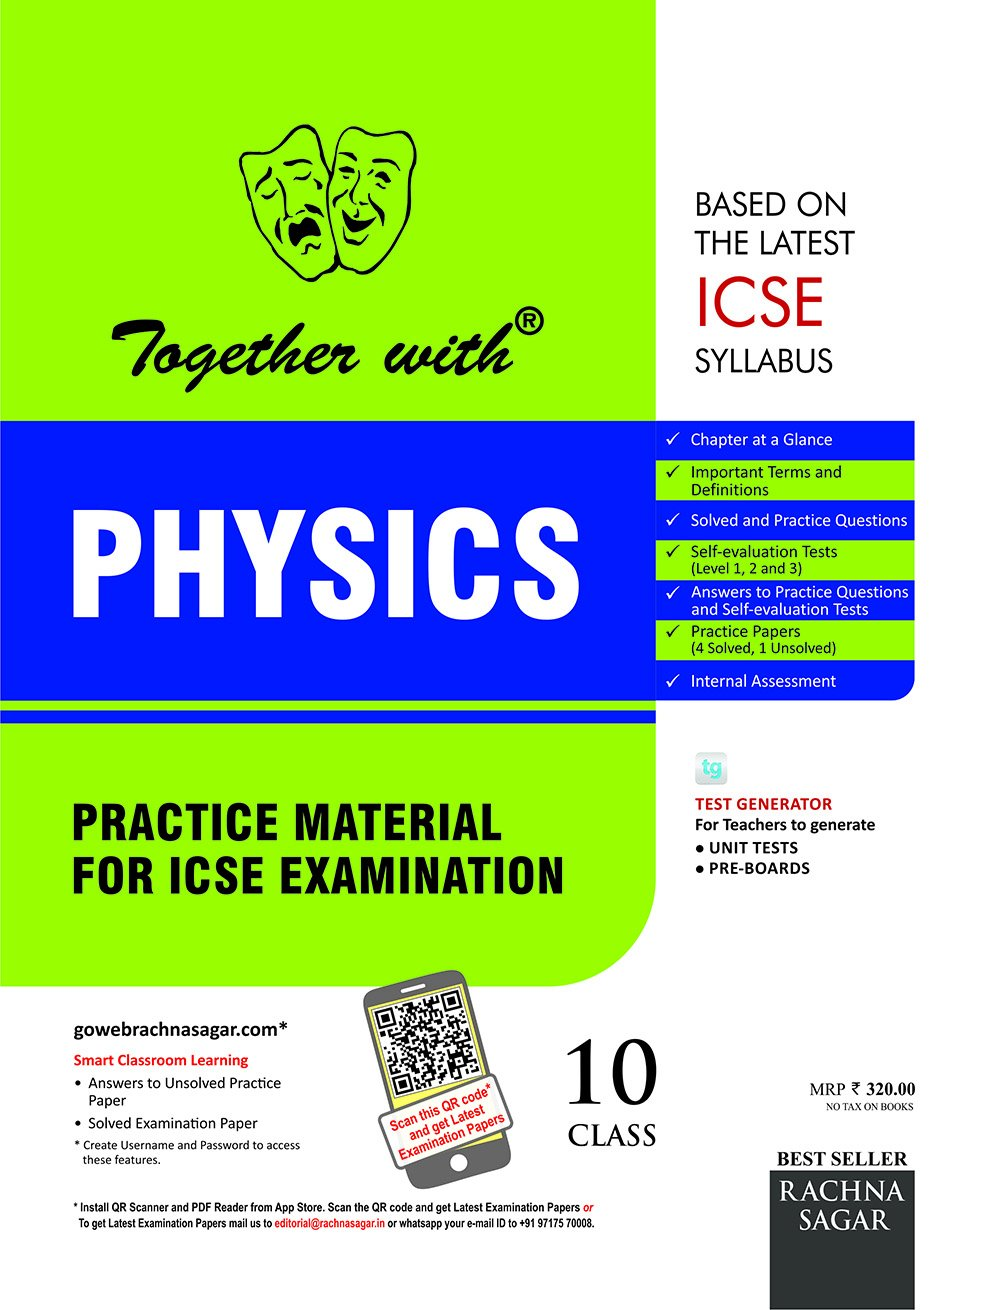 Amazon in: Buy Together with ICSE Practice Material for Class 10